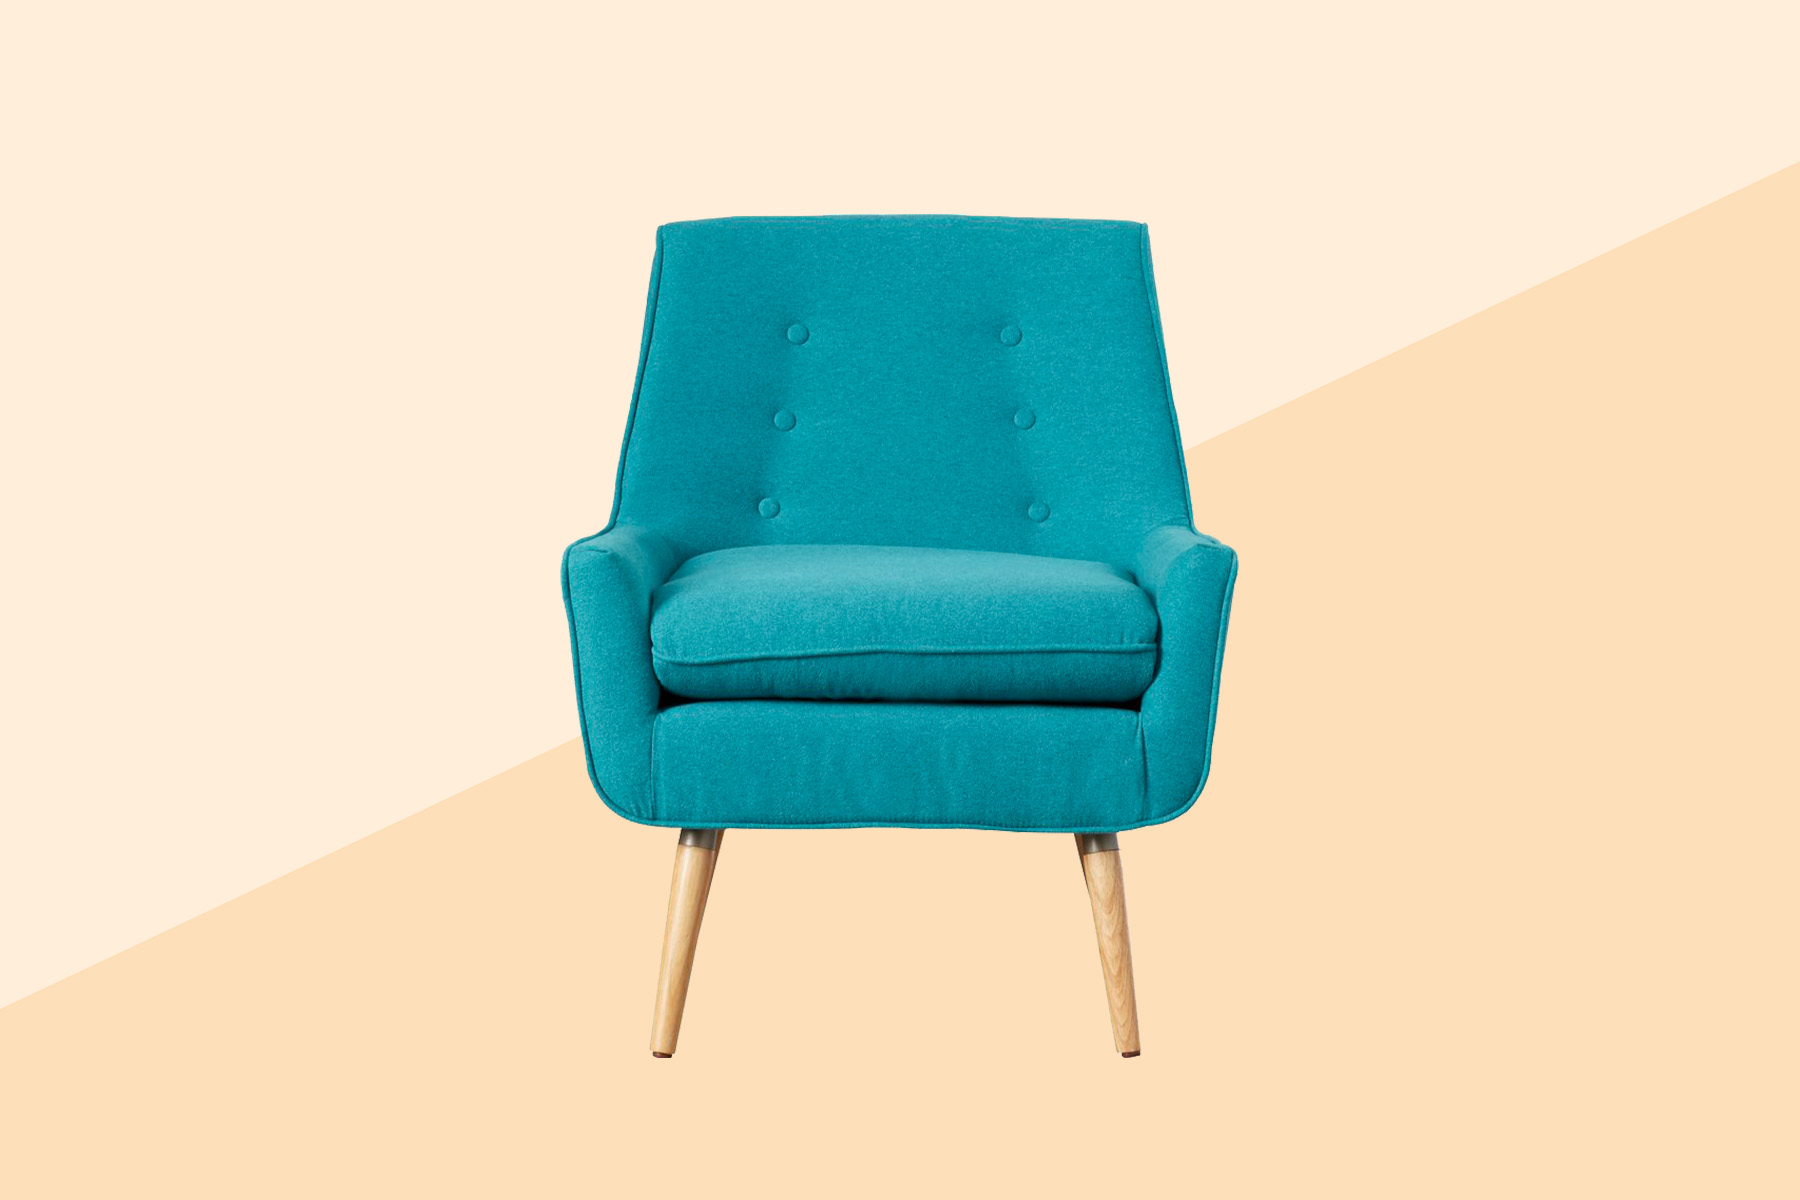 Wayfair's Clearance Sale Has Huge Discounts on Furniture and Decor—But Only for 3 Days